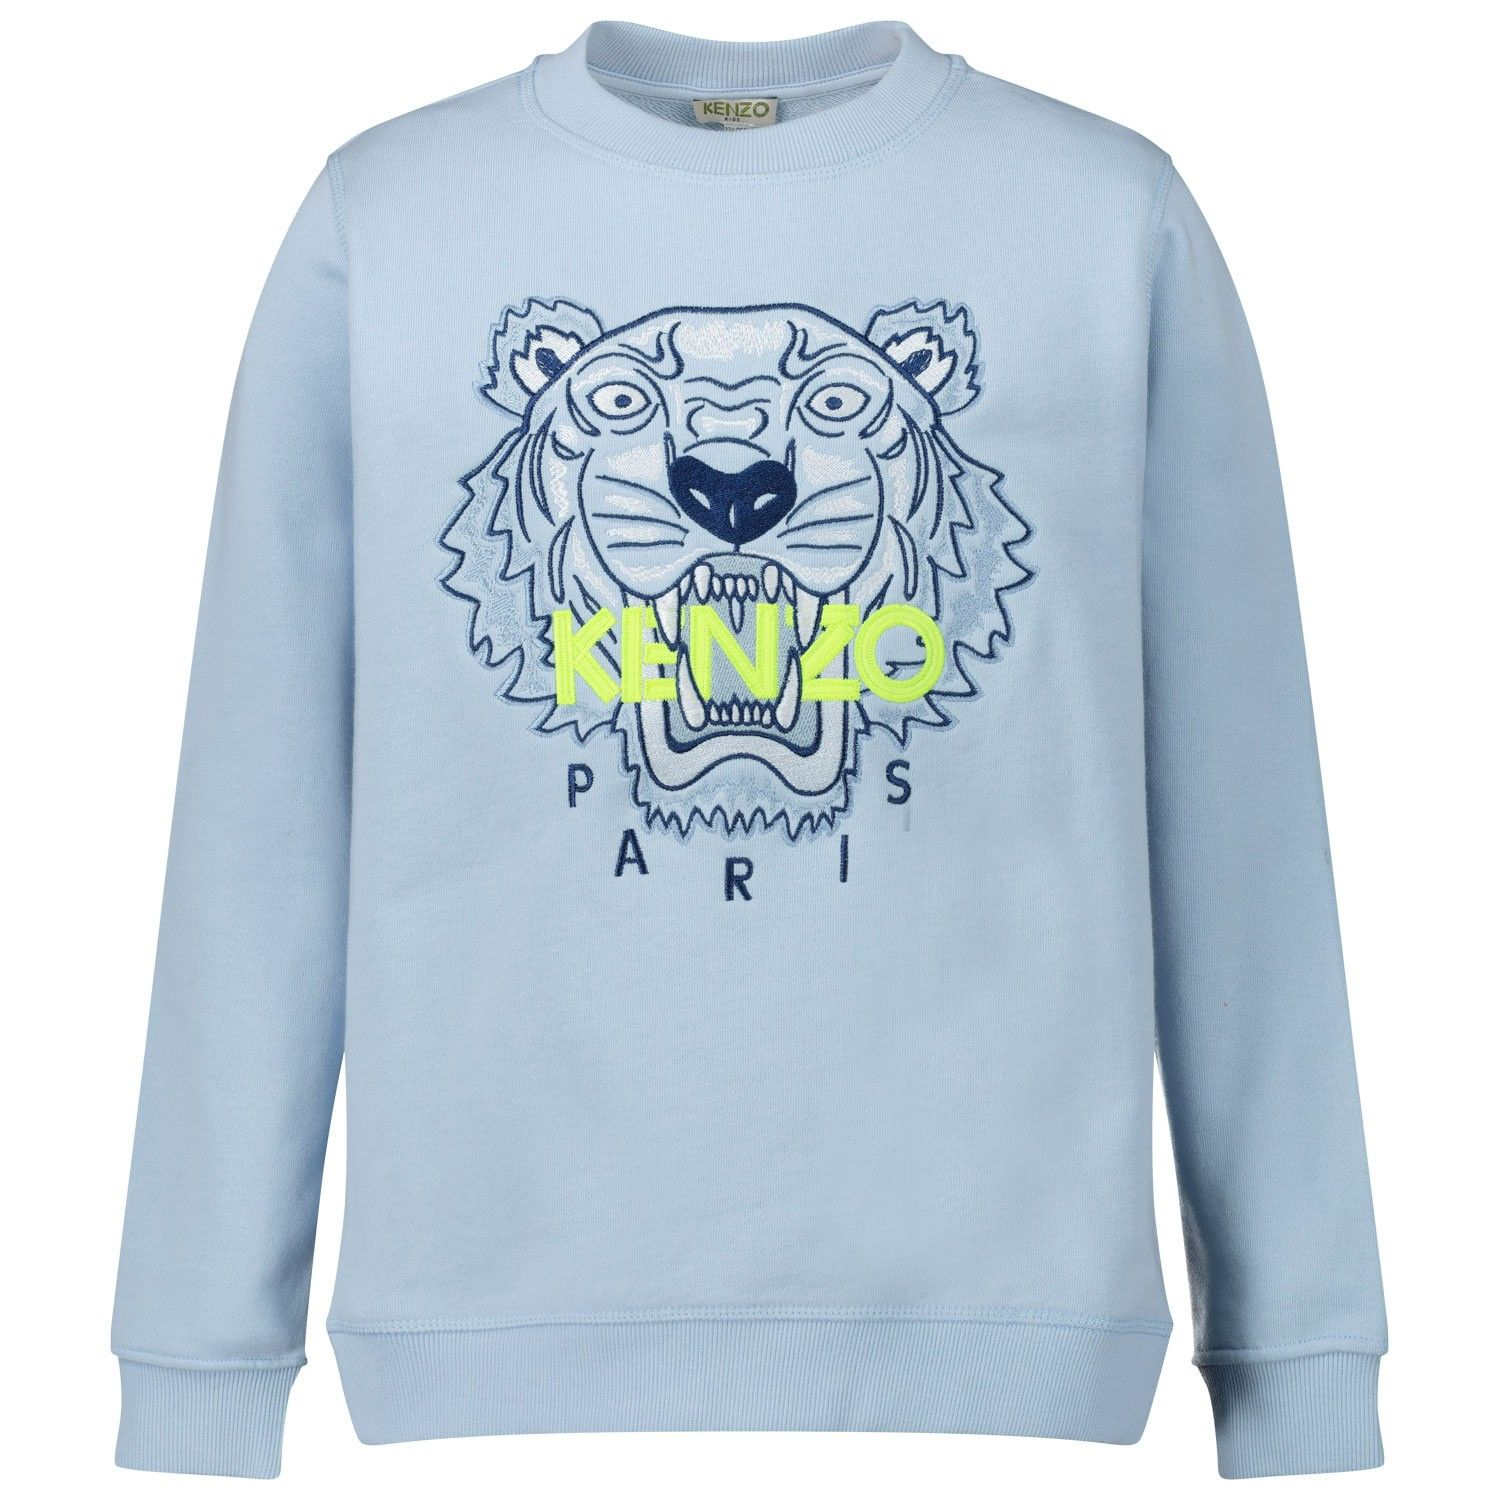 Picture of Kenzo 15688 kids sweater light blue